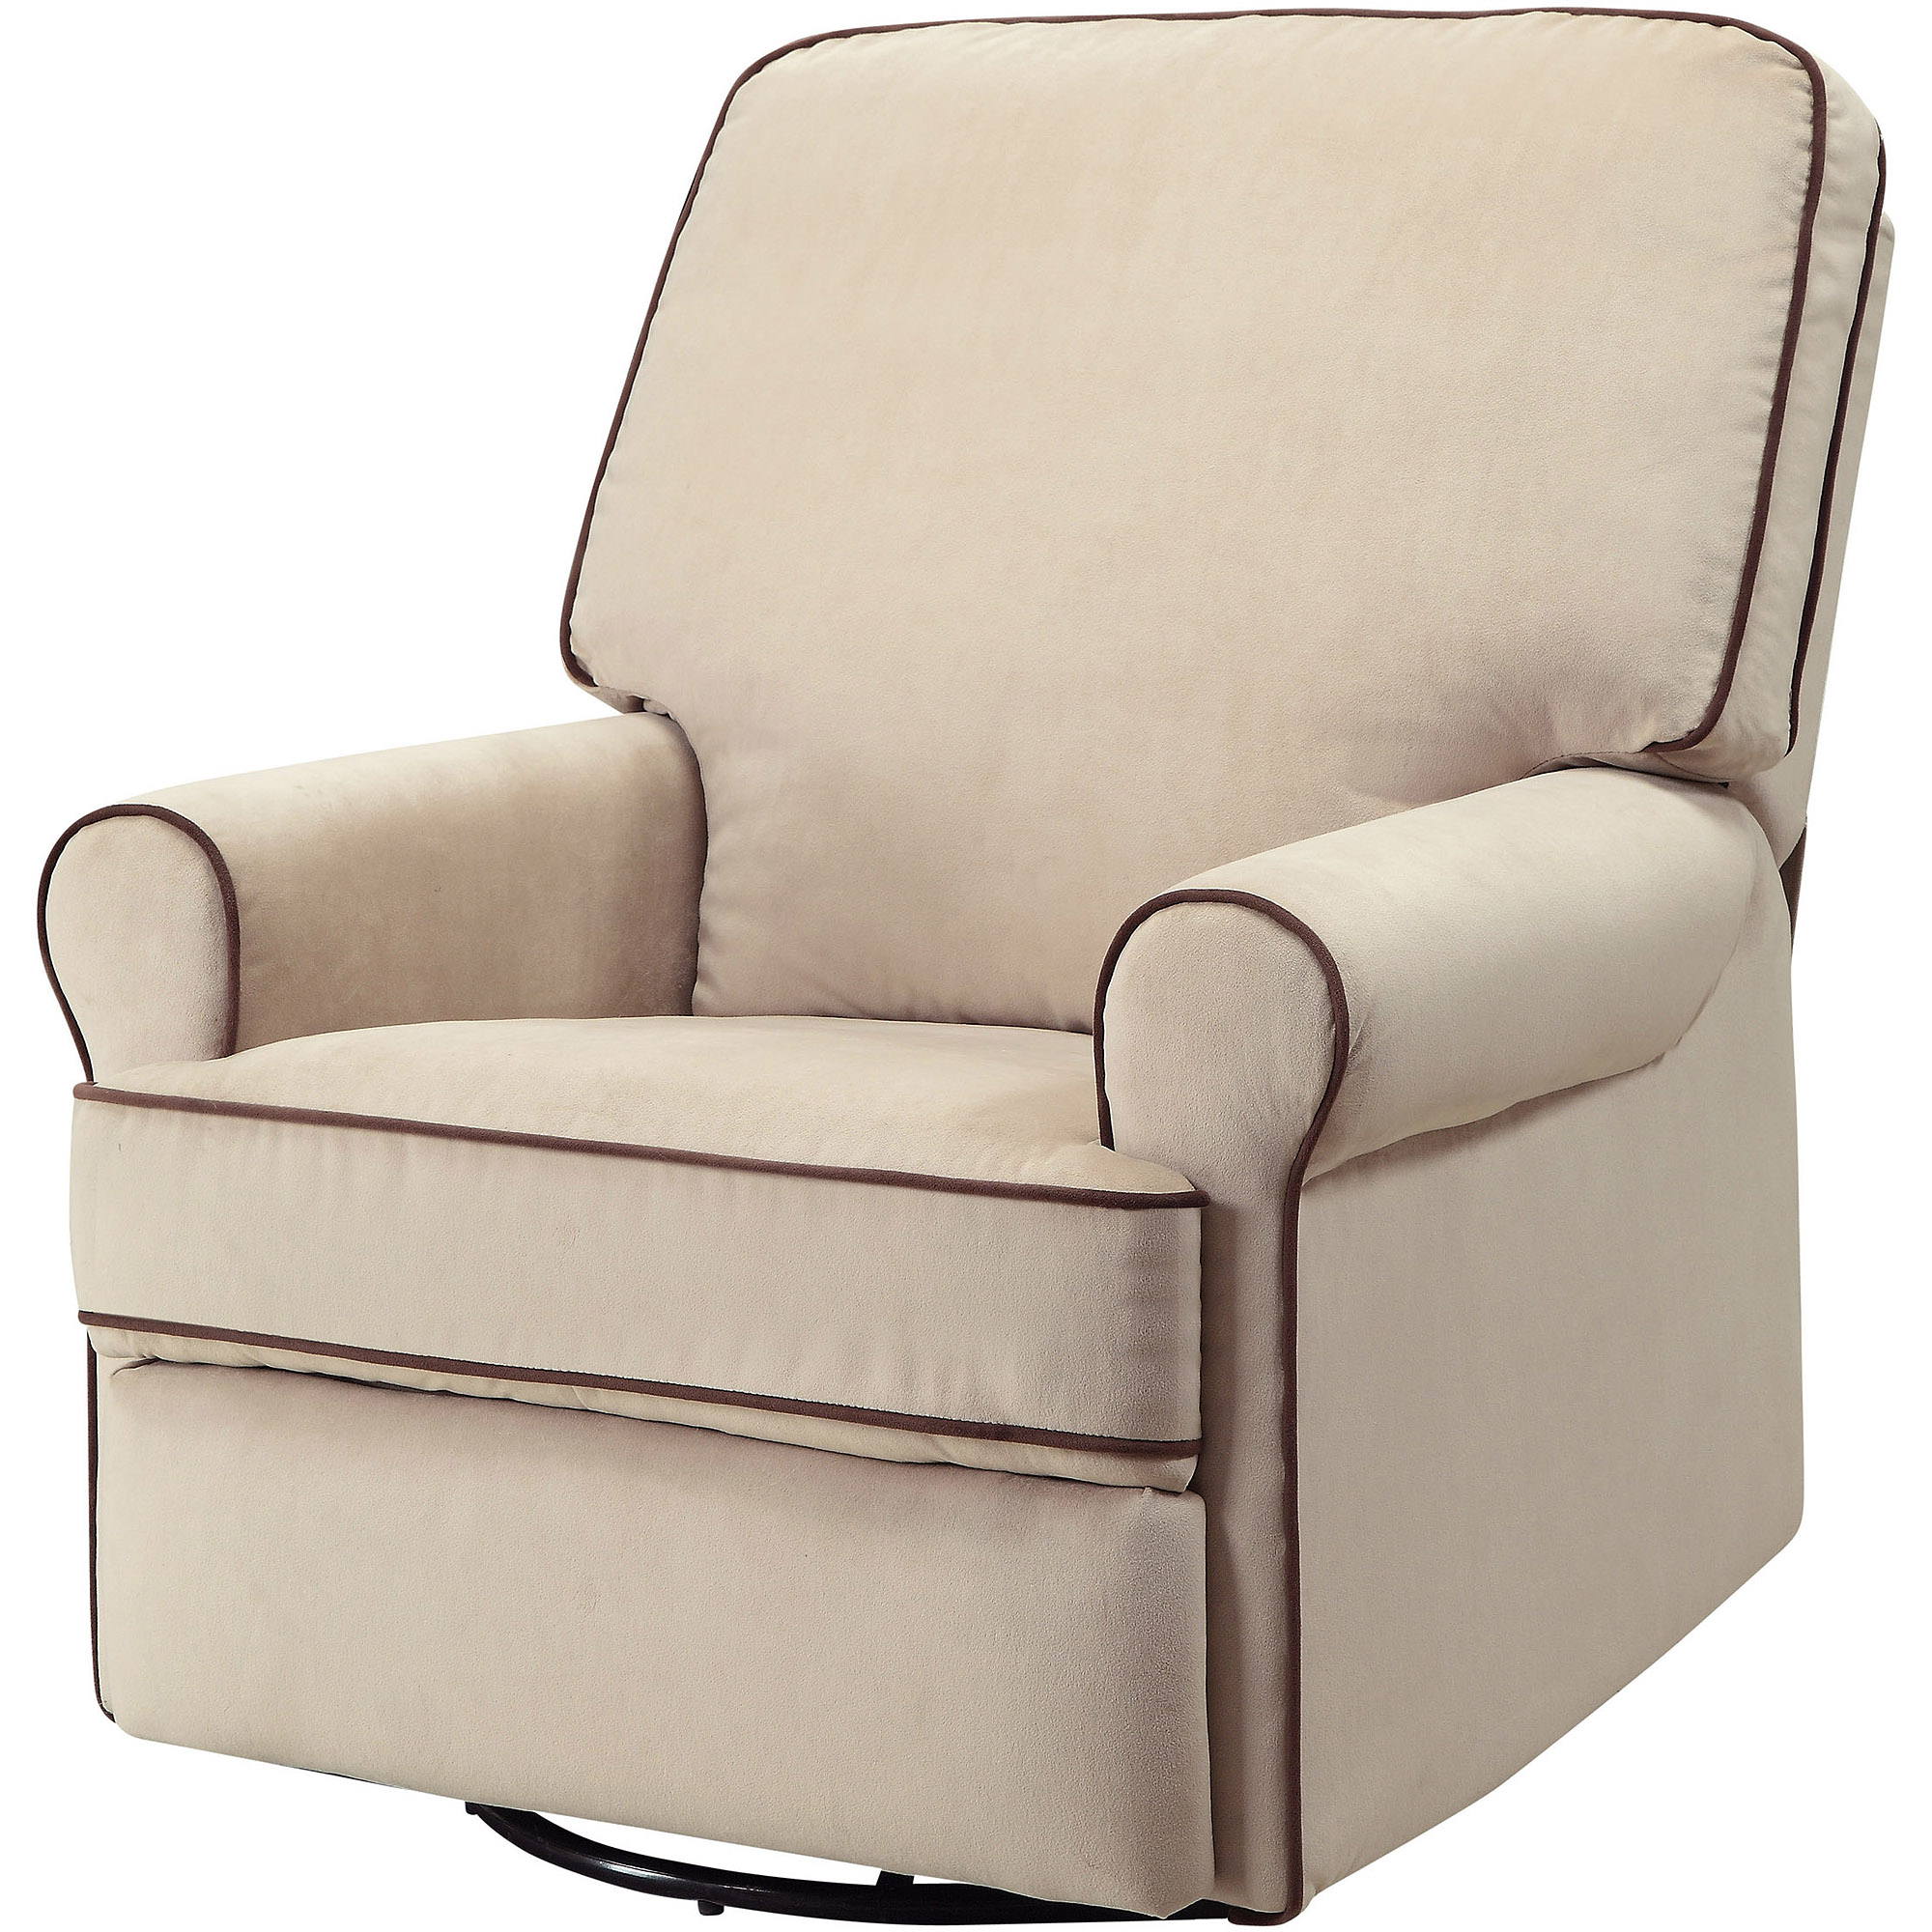 Home Meridian International Birch Hill Swivel Glider Recliner Stella Contrast Piping, Beige by Pri